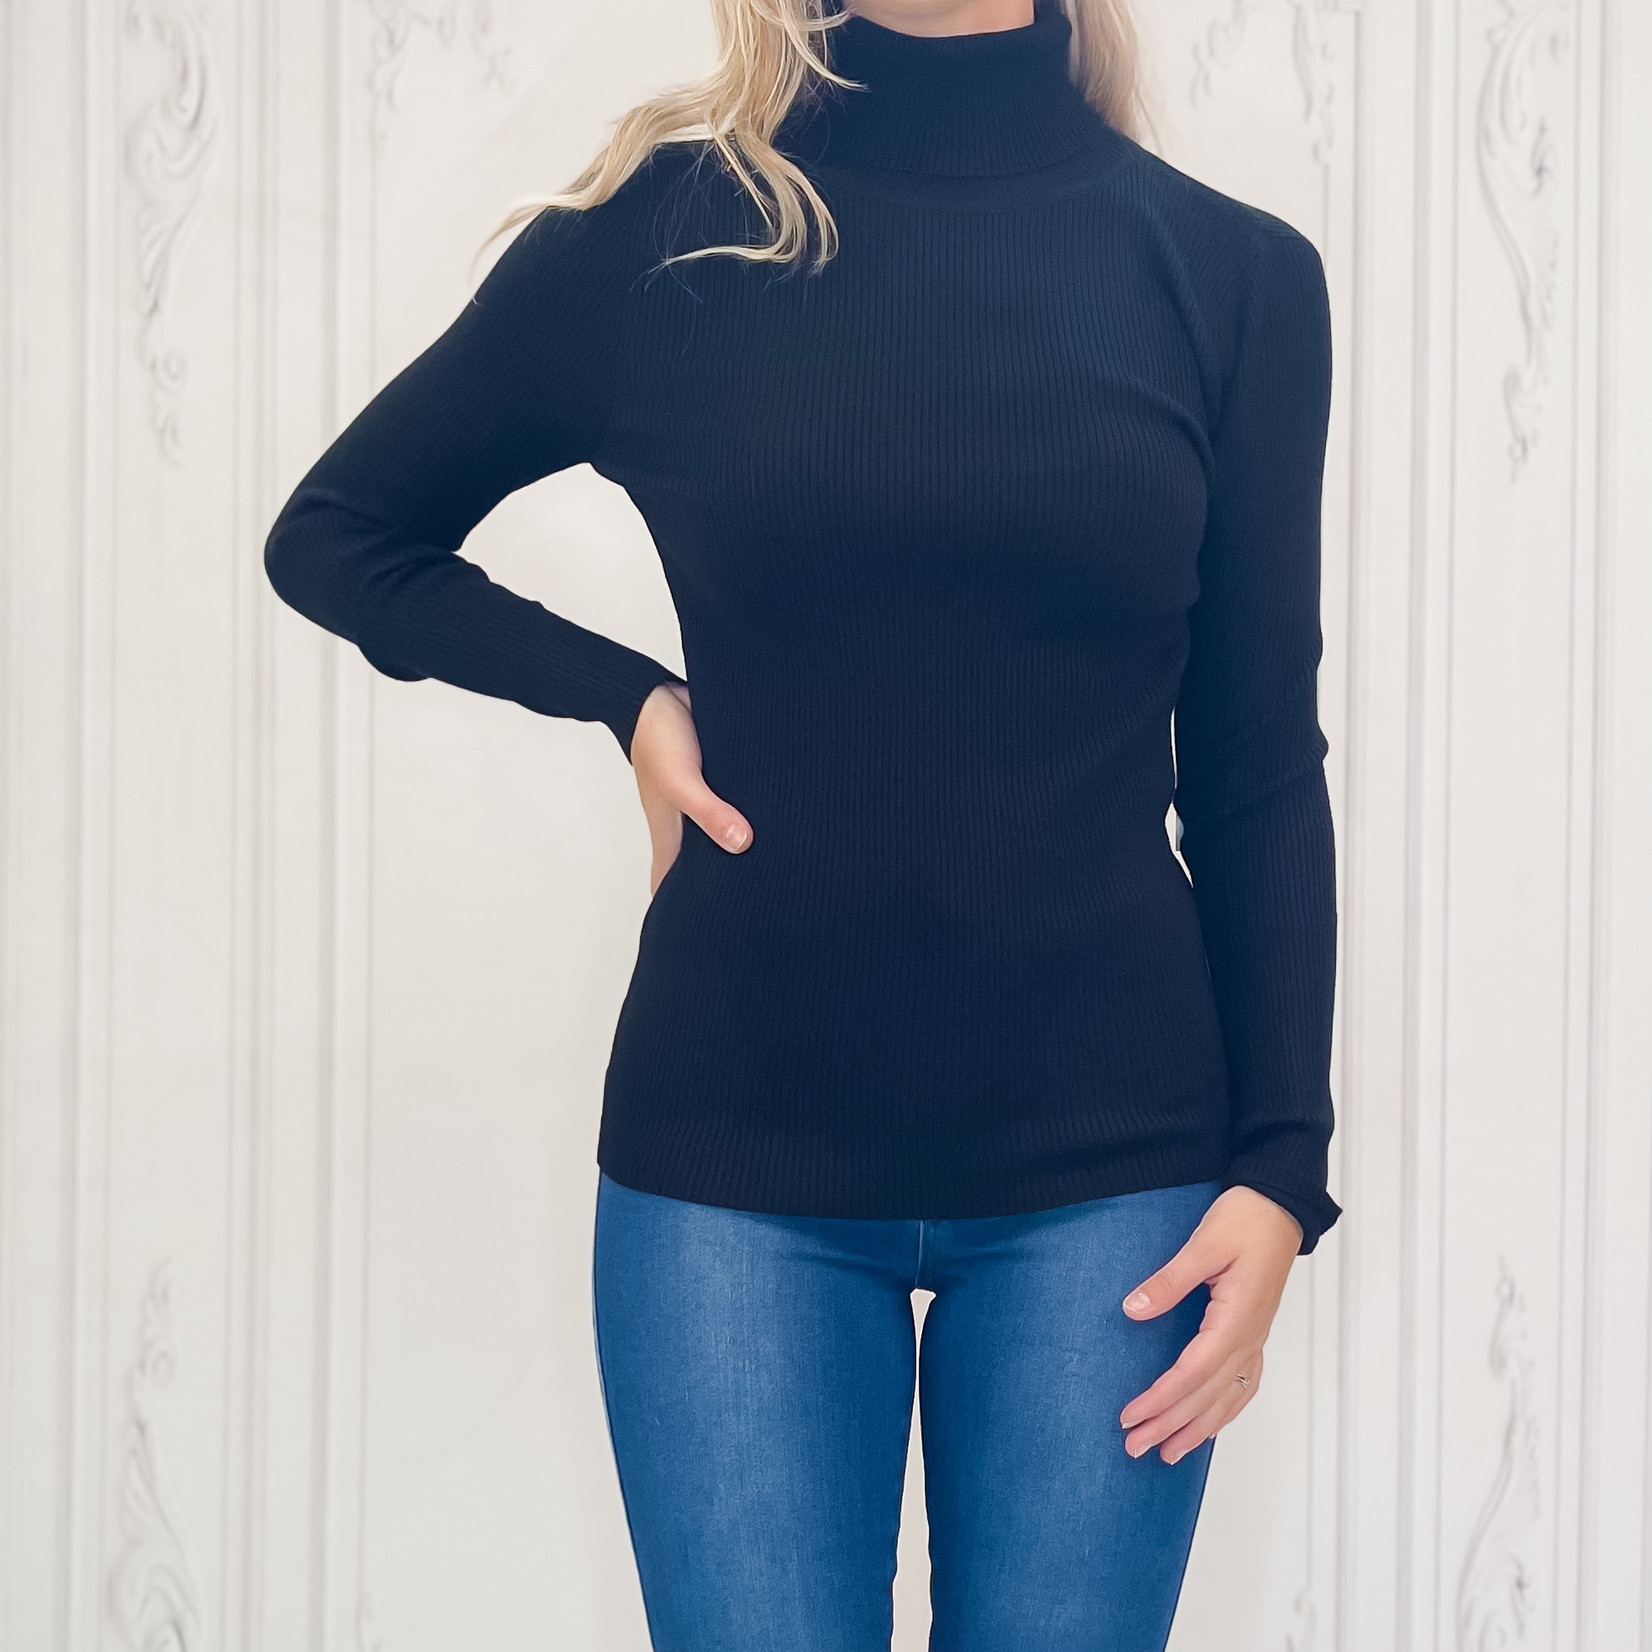 Clementine ribbed turtle neck top